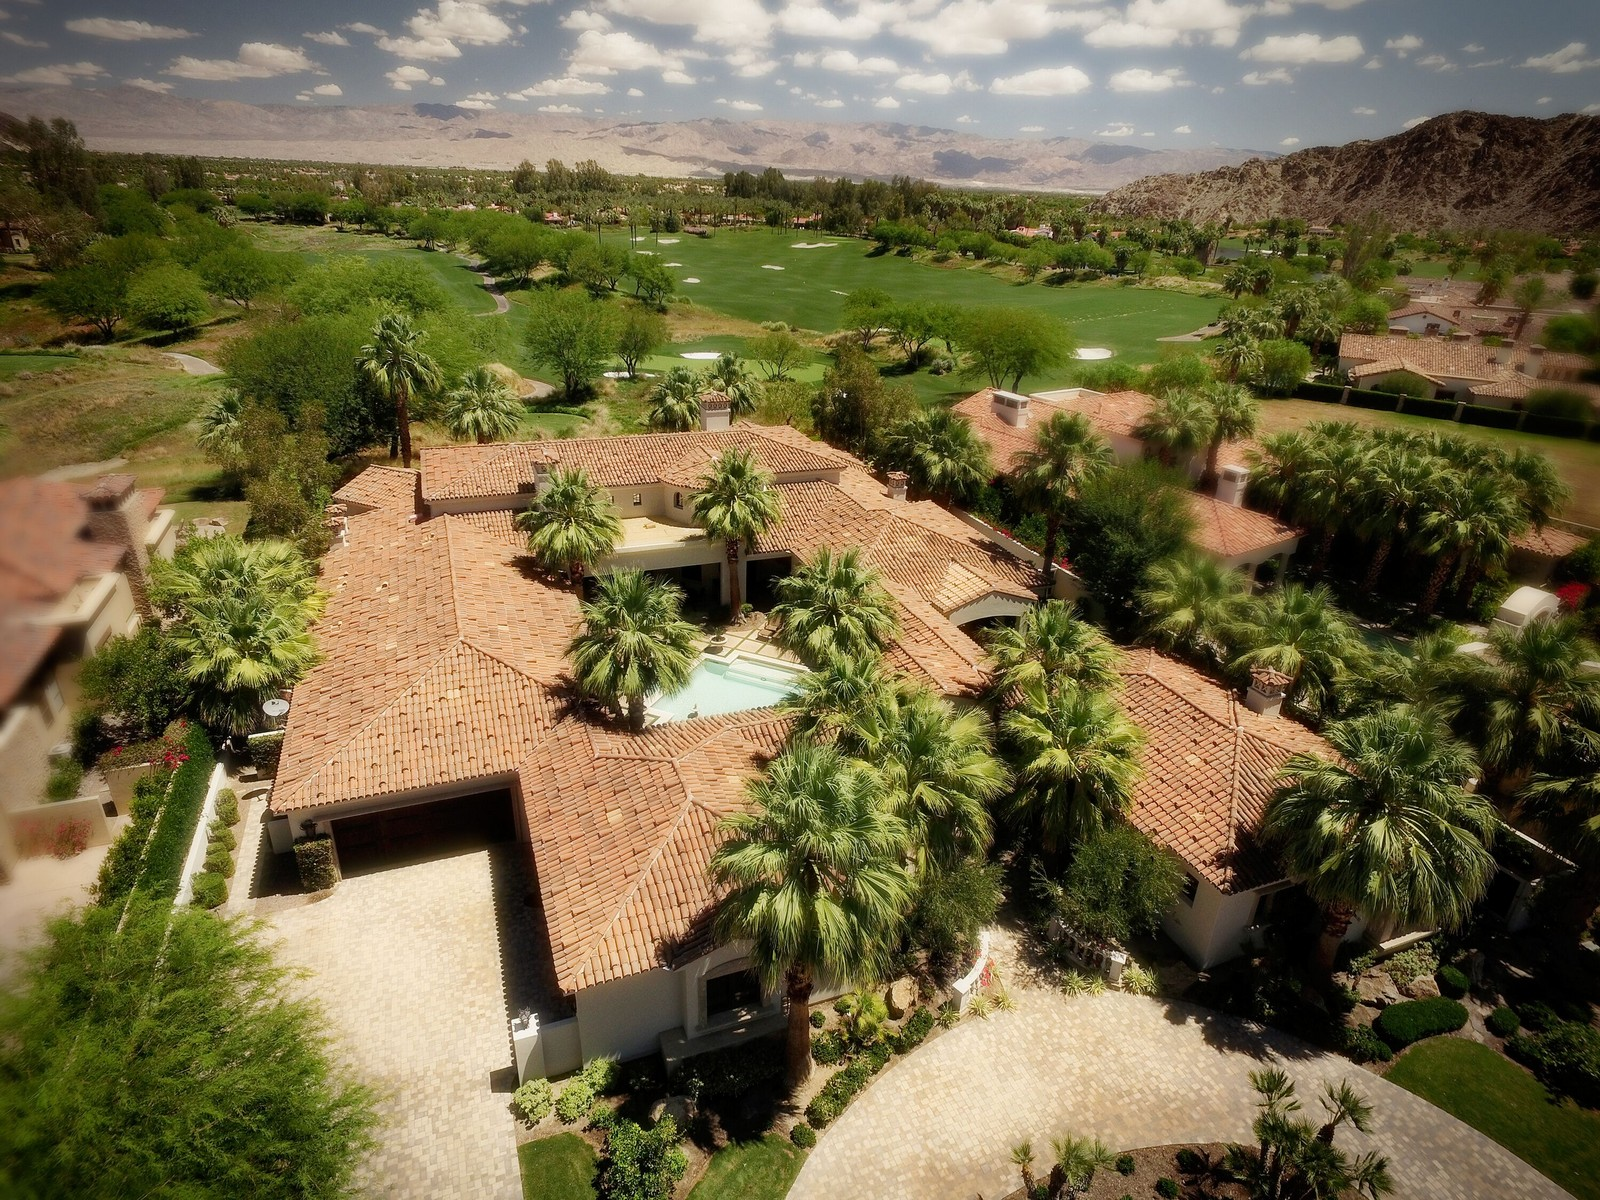 Single Family Home for Sale at 52632 Cahuilla Court La Quinta, California 92253 United States